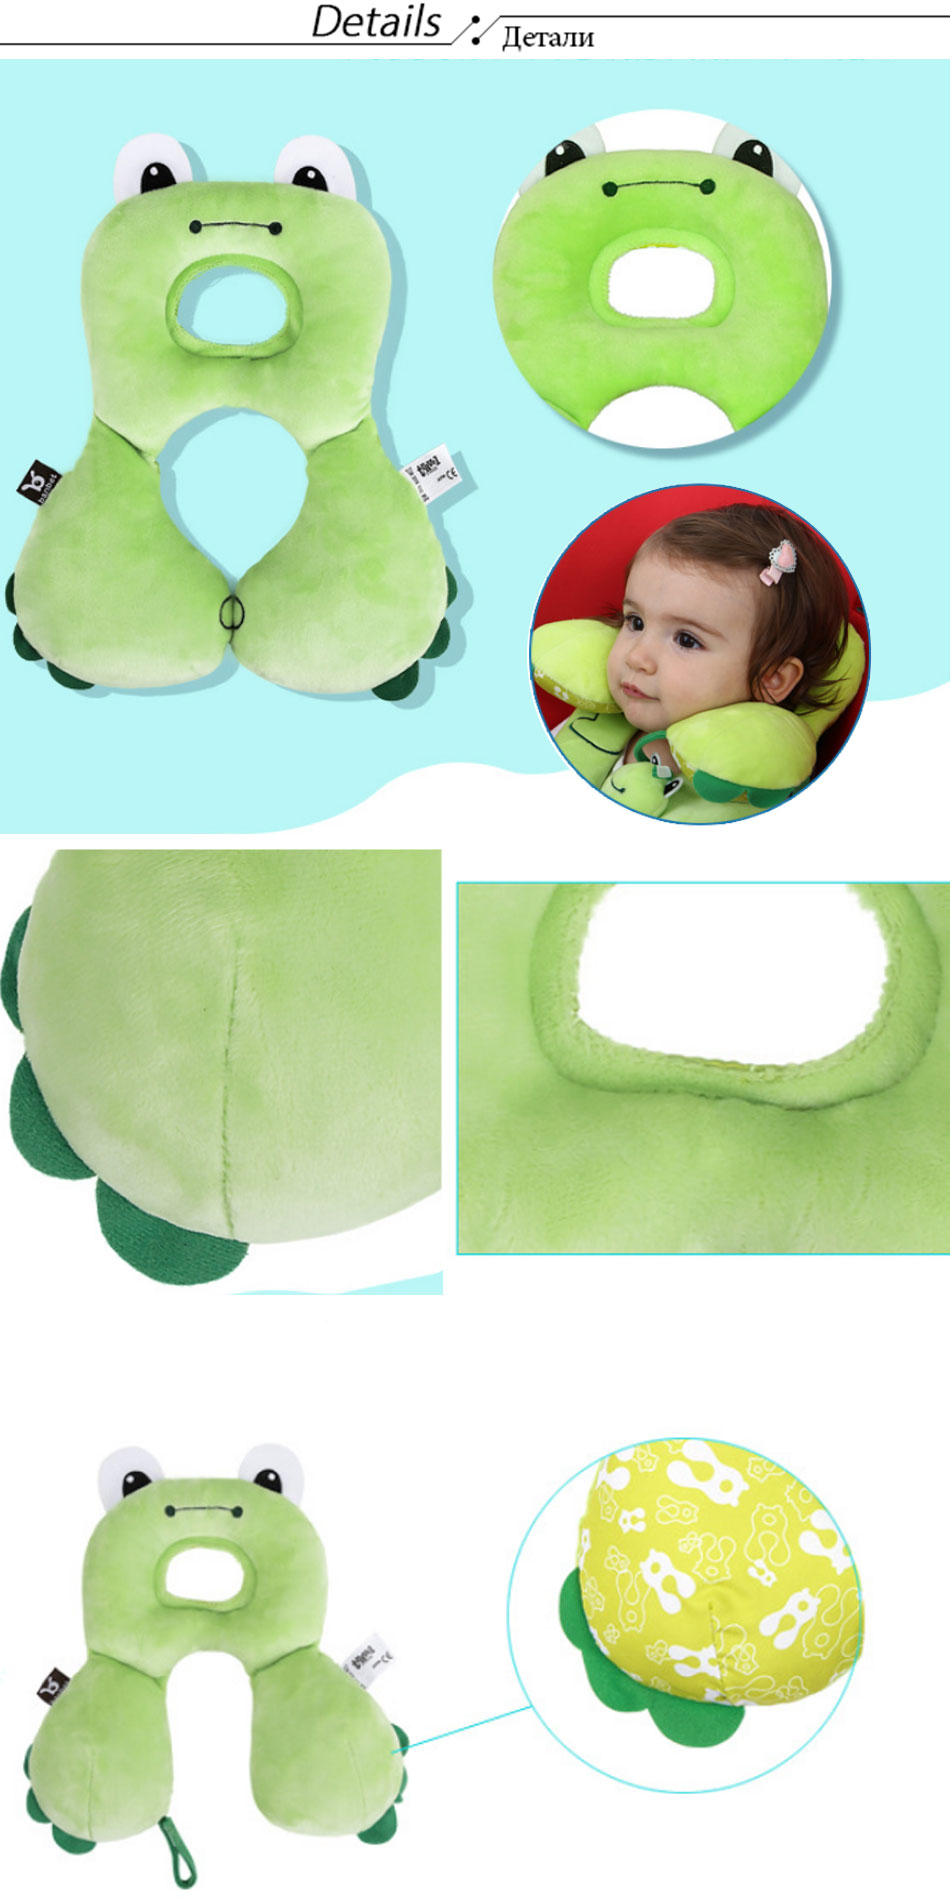 Baby room Baby room decor Baby pillow Baby decoration room Kids room decoration Nursing pillow